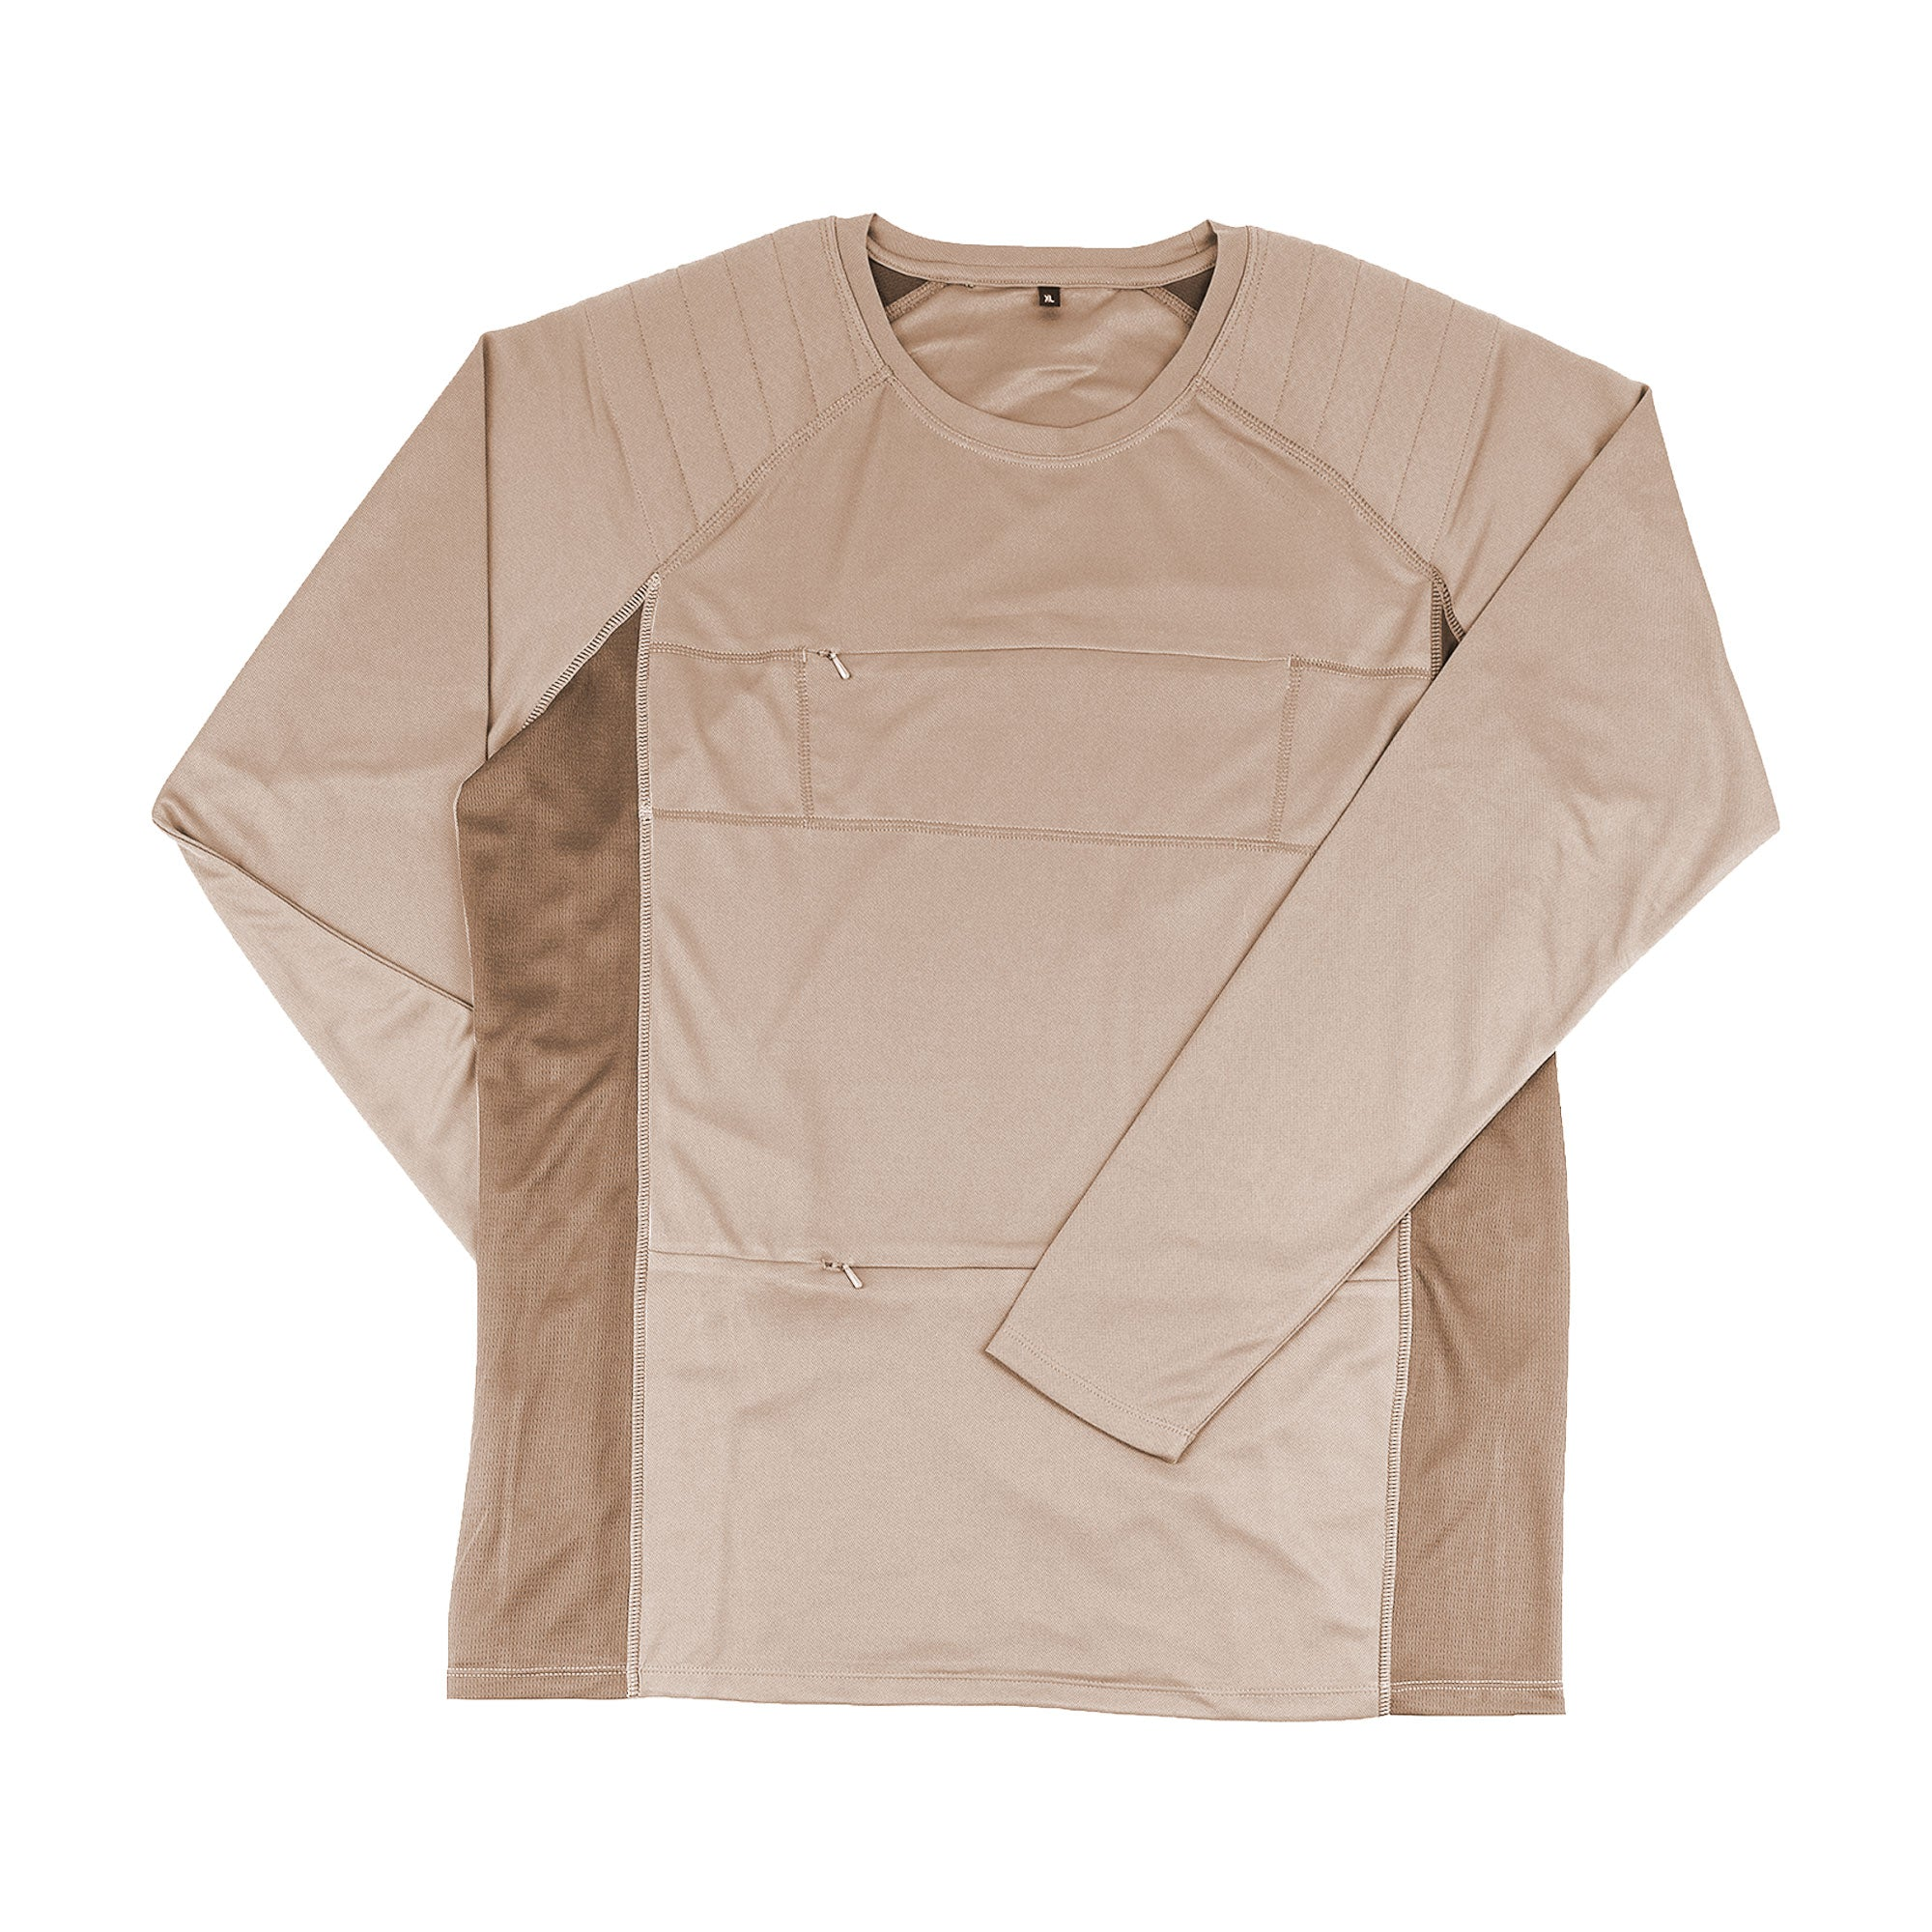 The Peregrine Long Sleeved Tee (sand). A great birdwatching t-shirt.